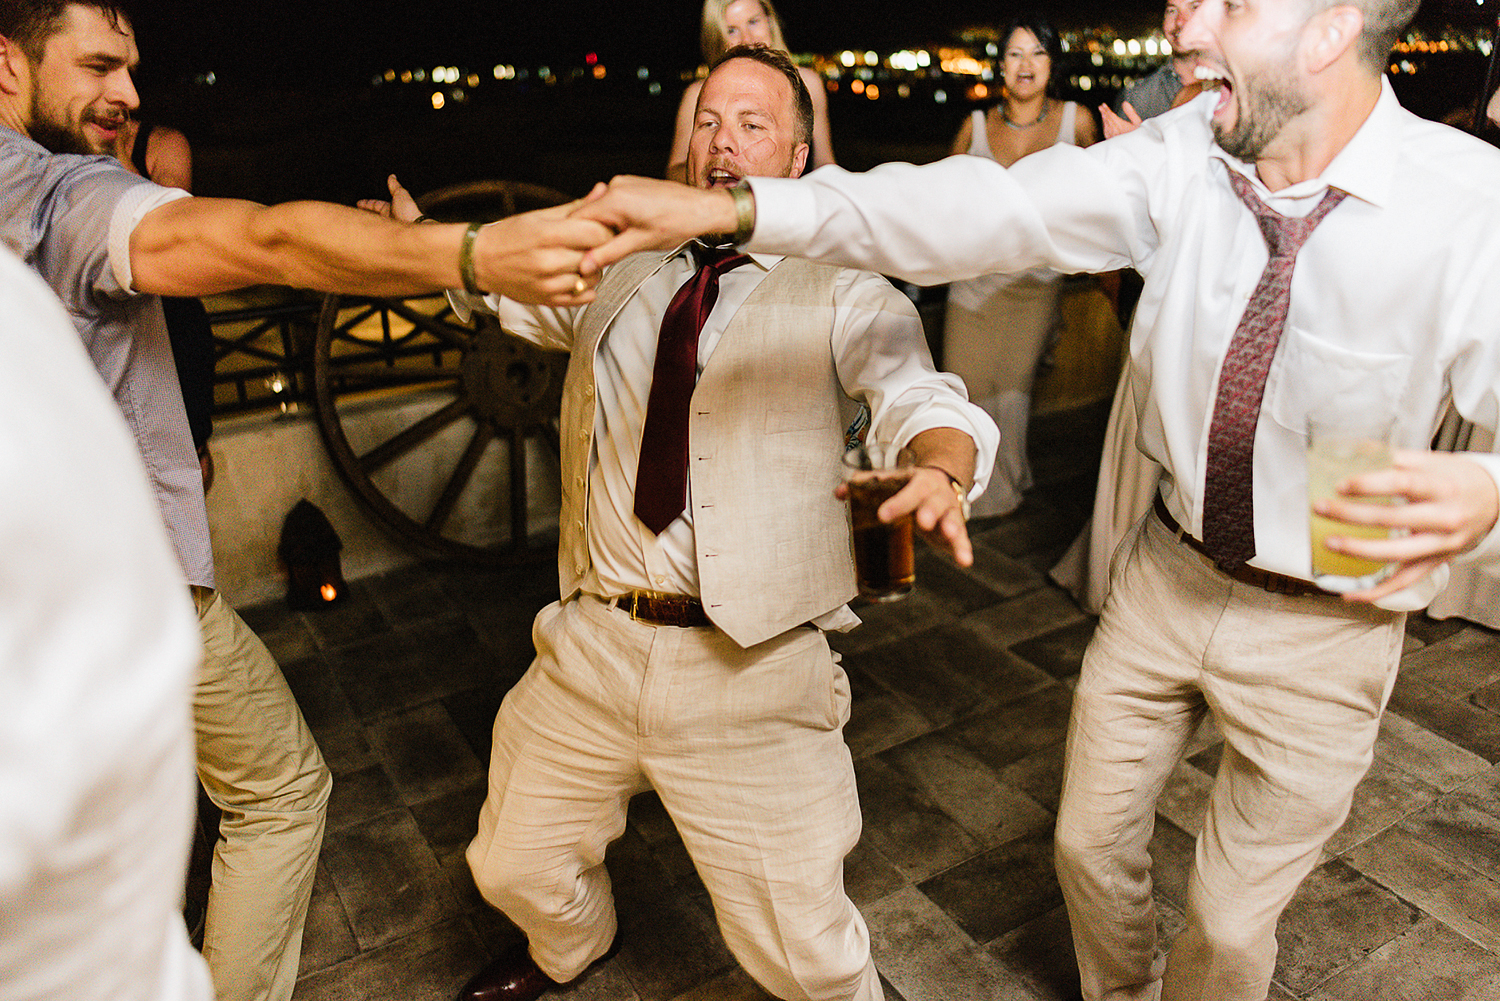 cabo-san-lucas-ventanas-private-residence-alternative-toronto-wedding-photographer-documentary-photojournalistic-reception-party-dancing-photos-candid-documentary-moments-trendy-cool-hipster-hip-hop-partying-groom-limbo.jpg